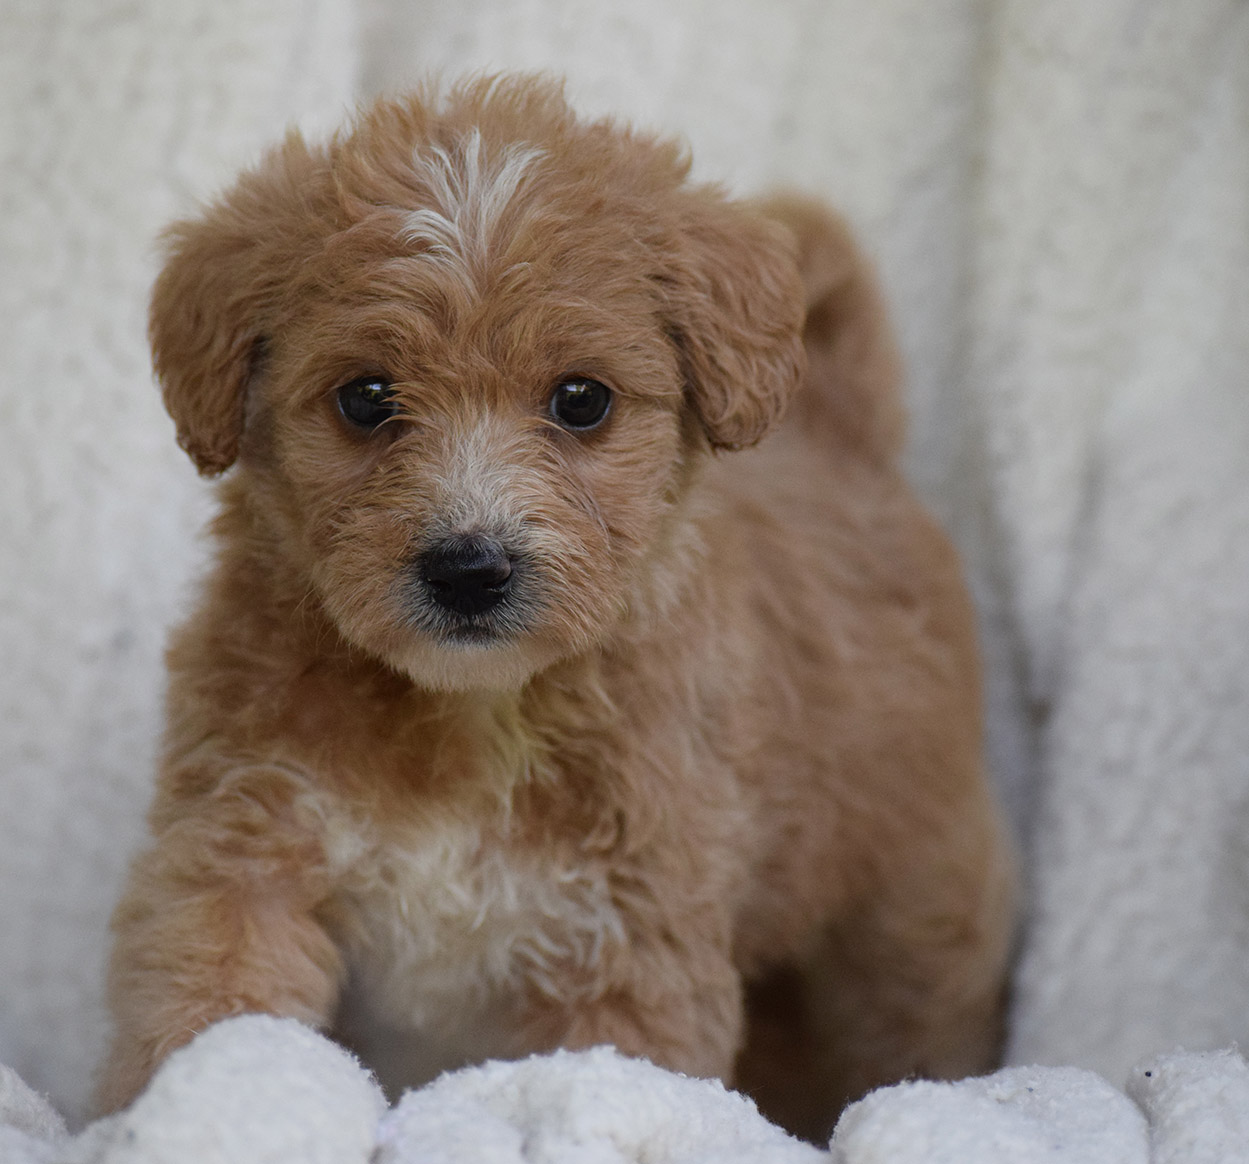 Australian Labradoodle Puppies for Sale - September 2019